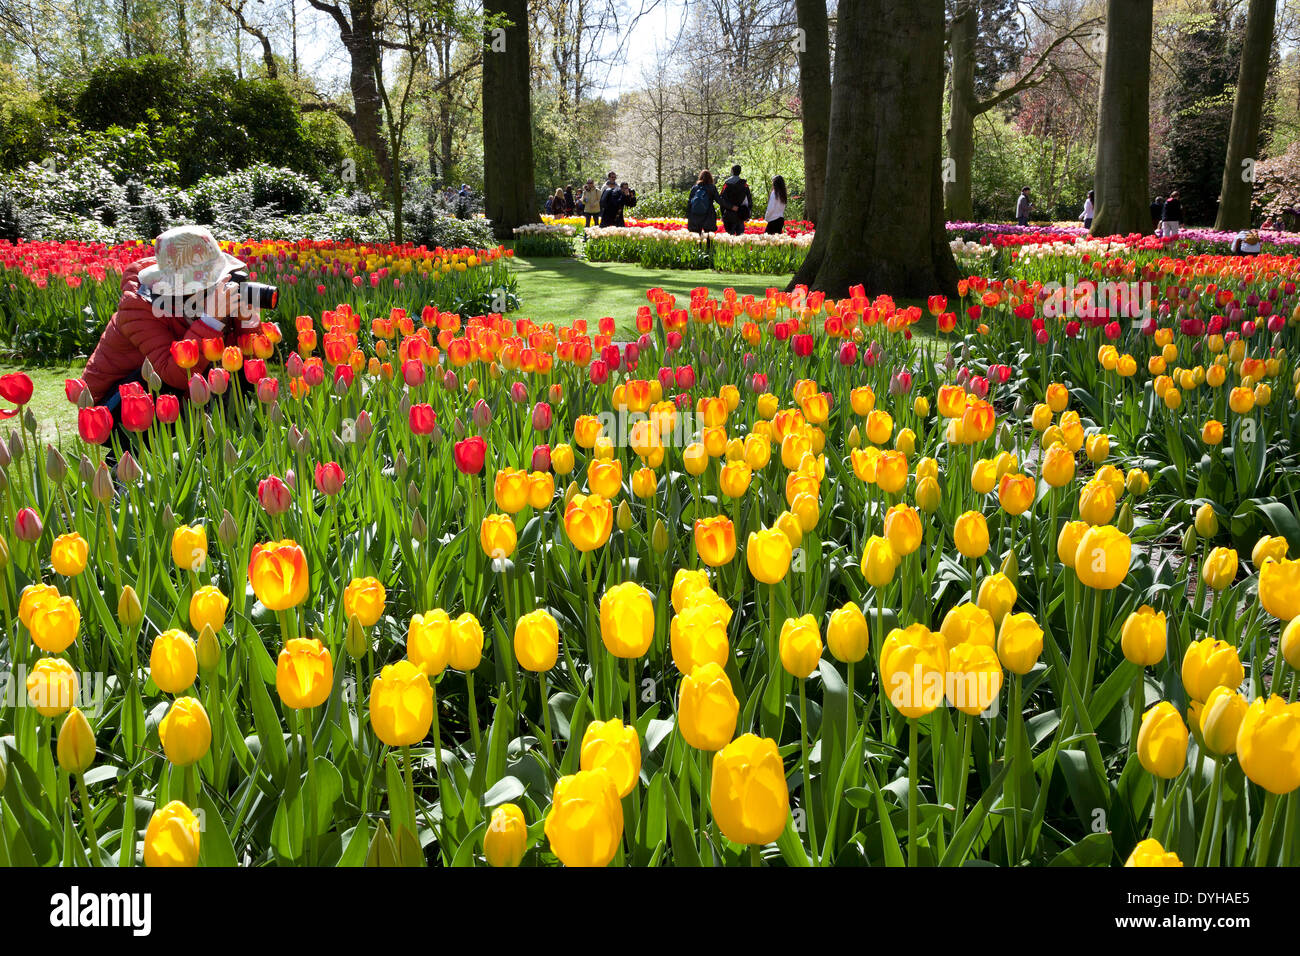 Tulips and tourists in the Keukenhof in Lisse, Holland - Stock Image